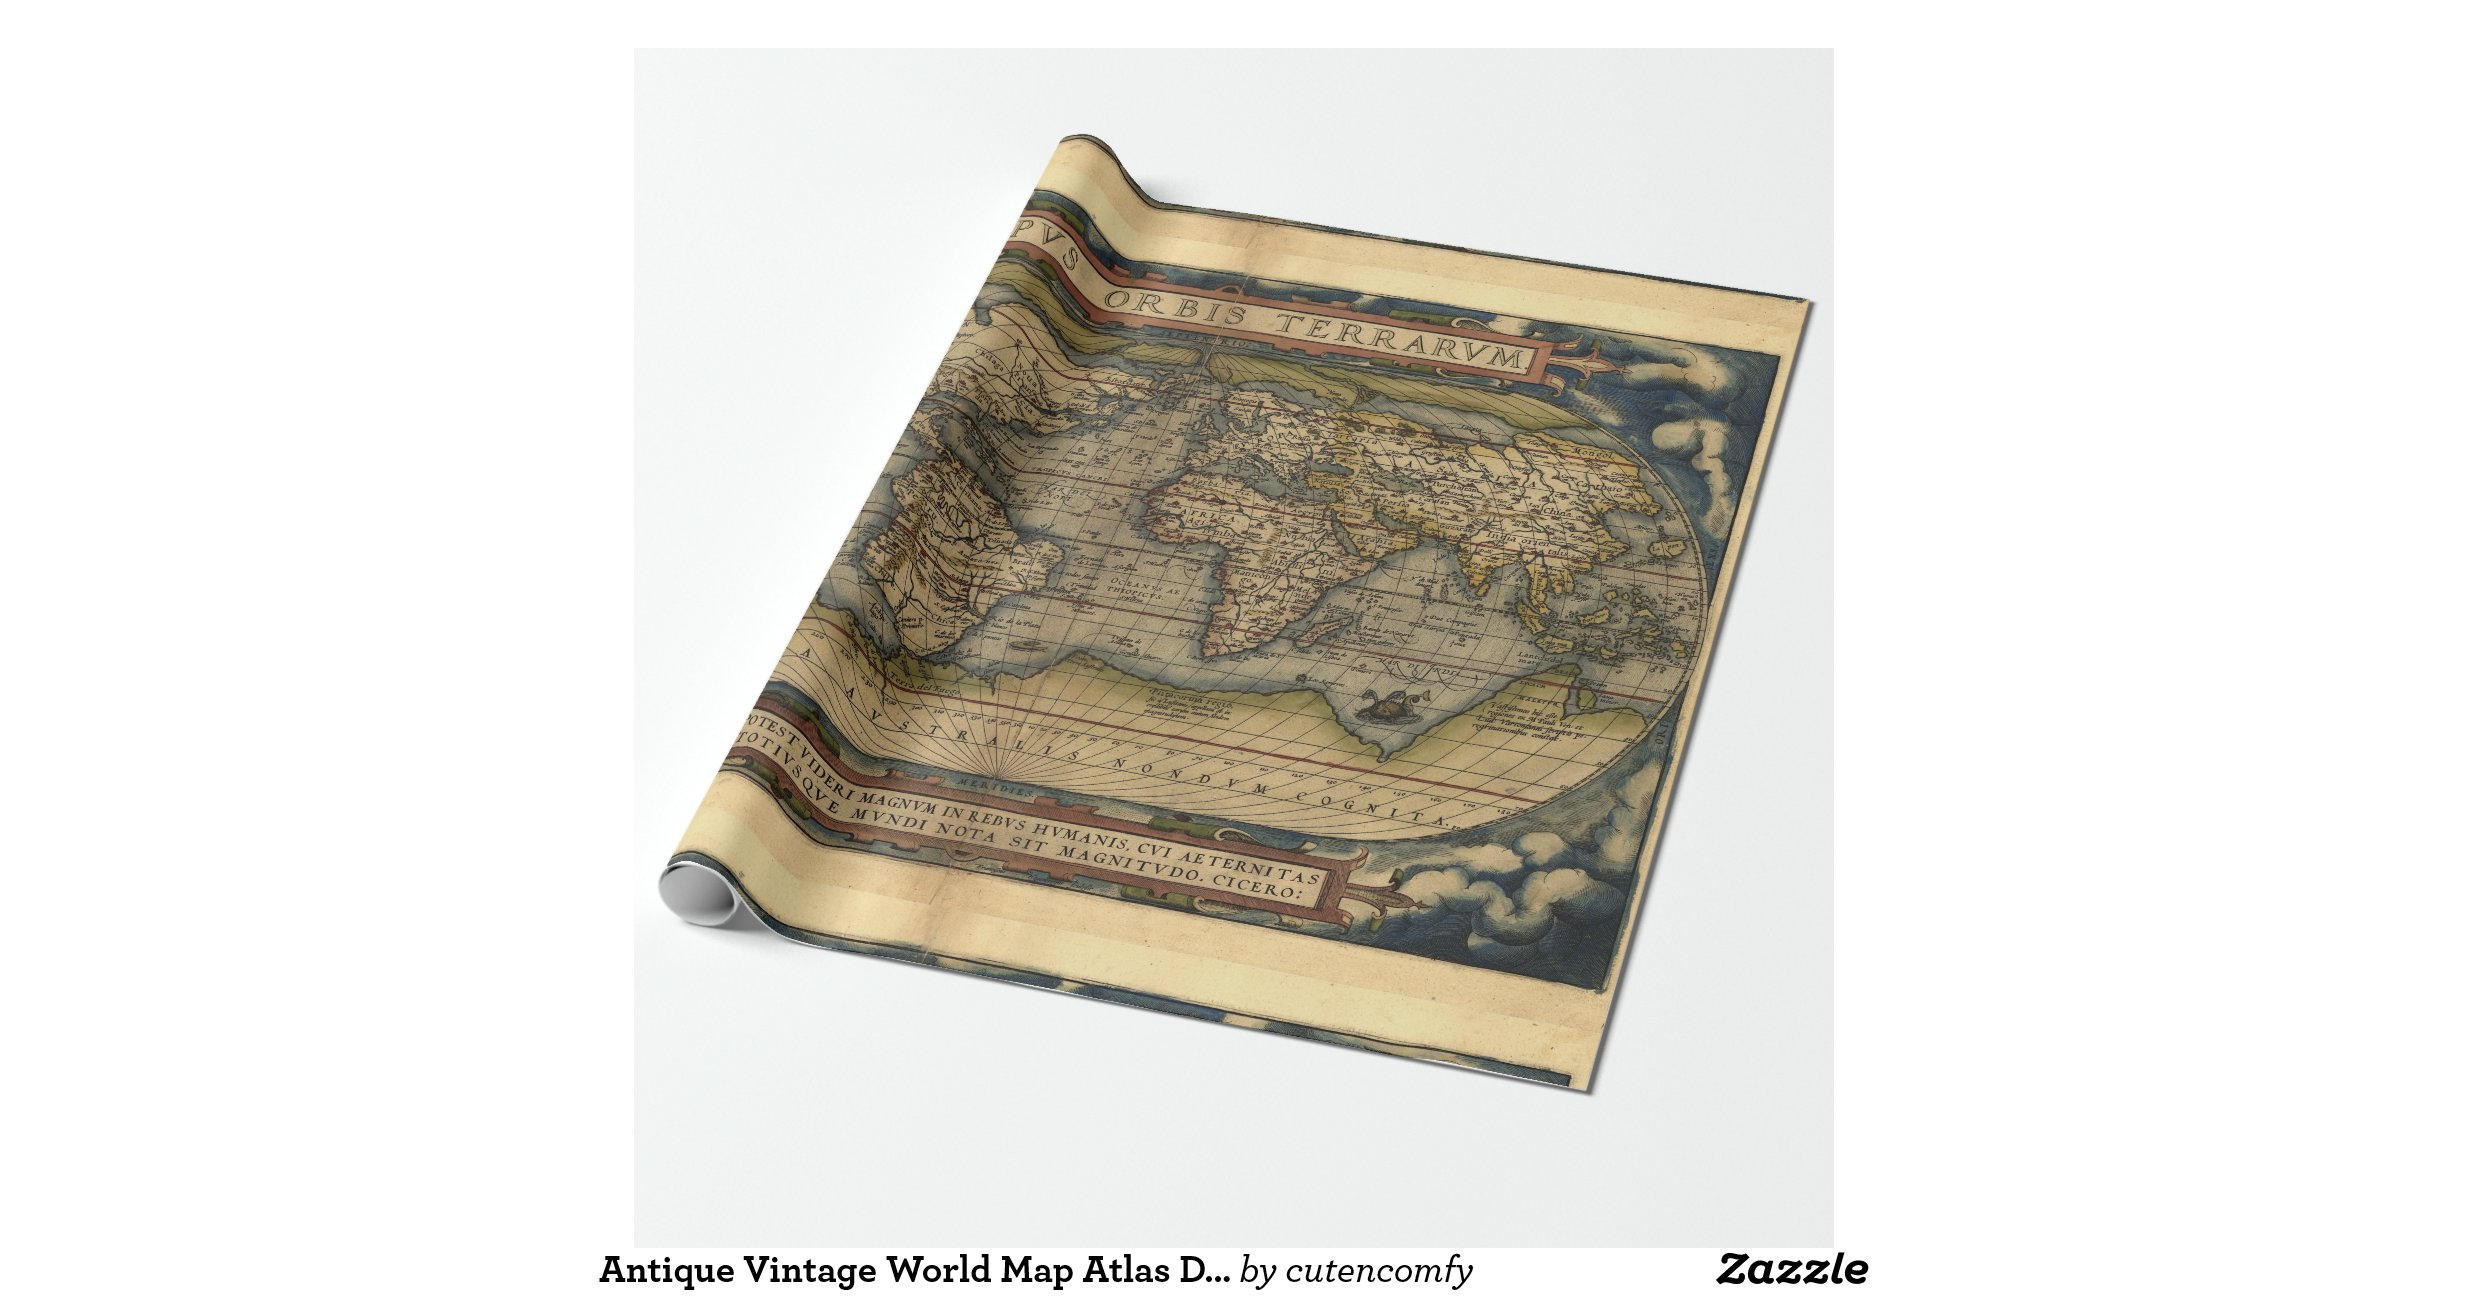 Antique vintage world map atlas decorative roll gift for Decorative paper rolls